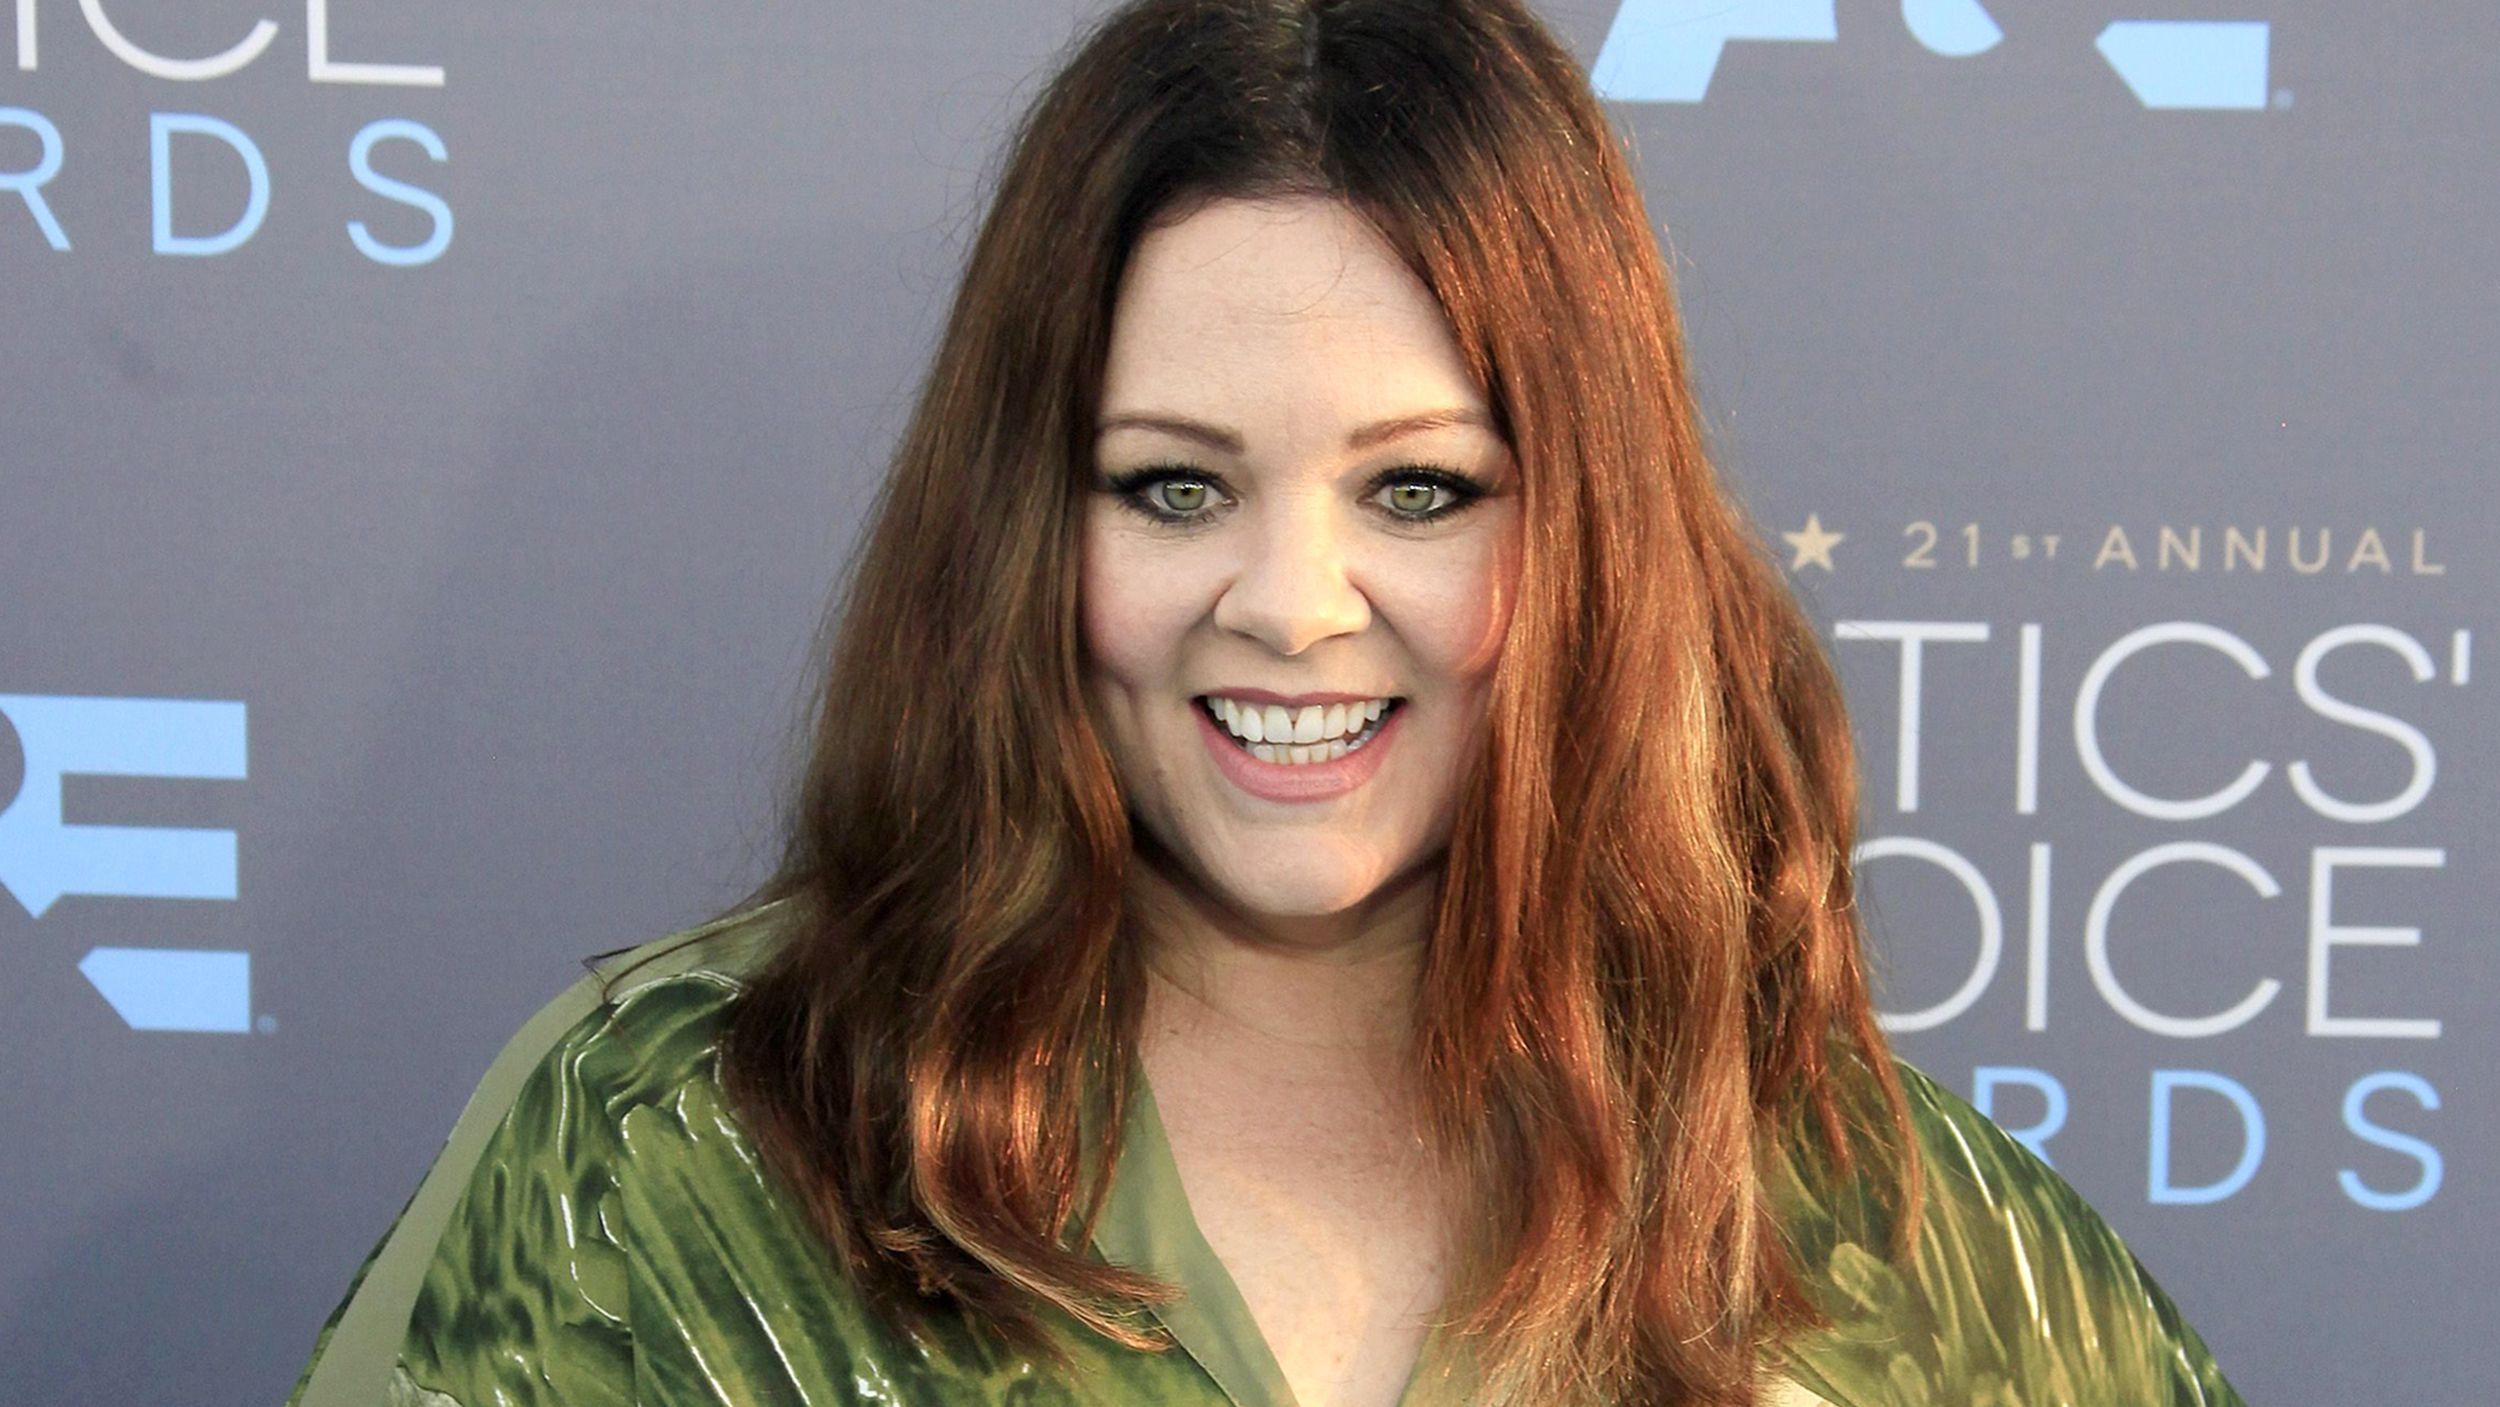 Melissa Mccarthy Hairstyles No Laughing Matter Melissa Mccarthy Looks Gorgeous With Short Hair